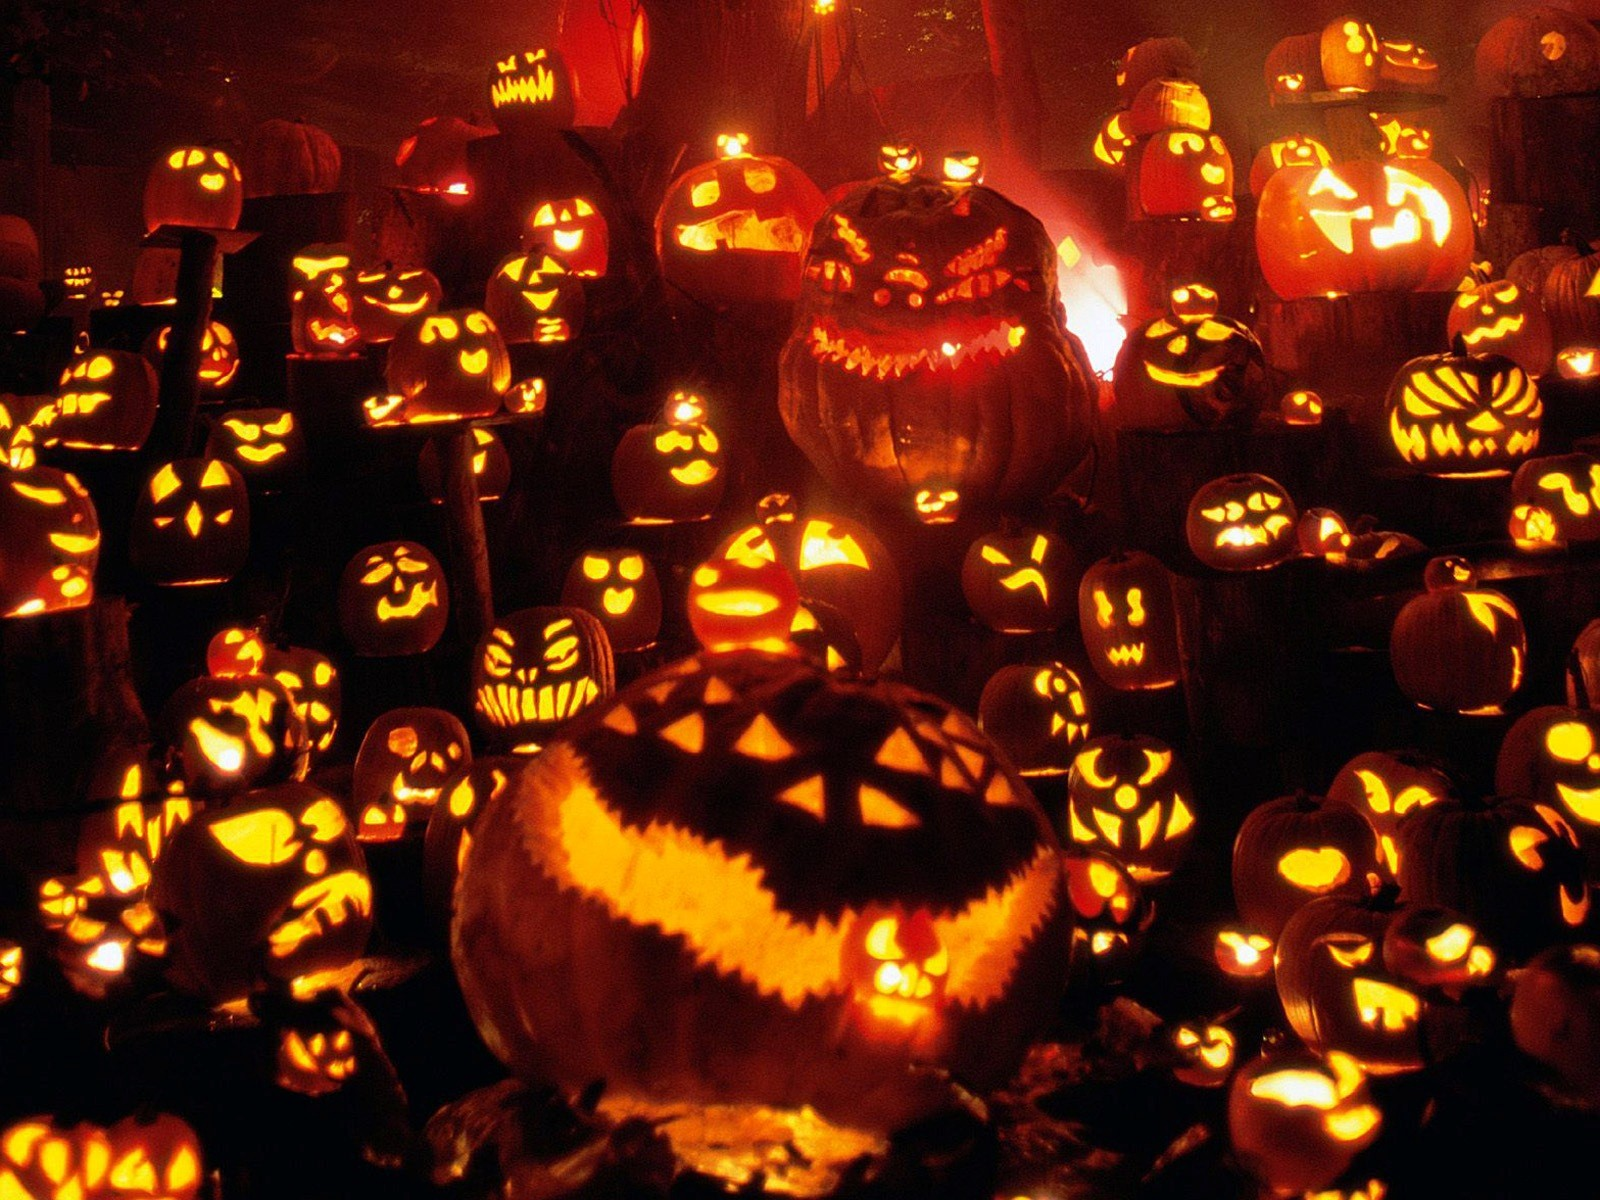 Halloween Pumpkins Festival HD Wallpaper HD Wallpapers 1600x1200